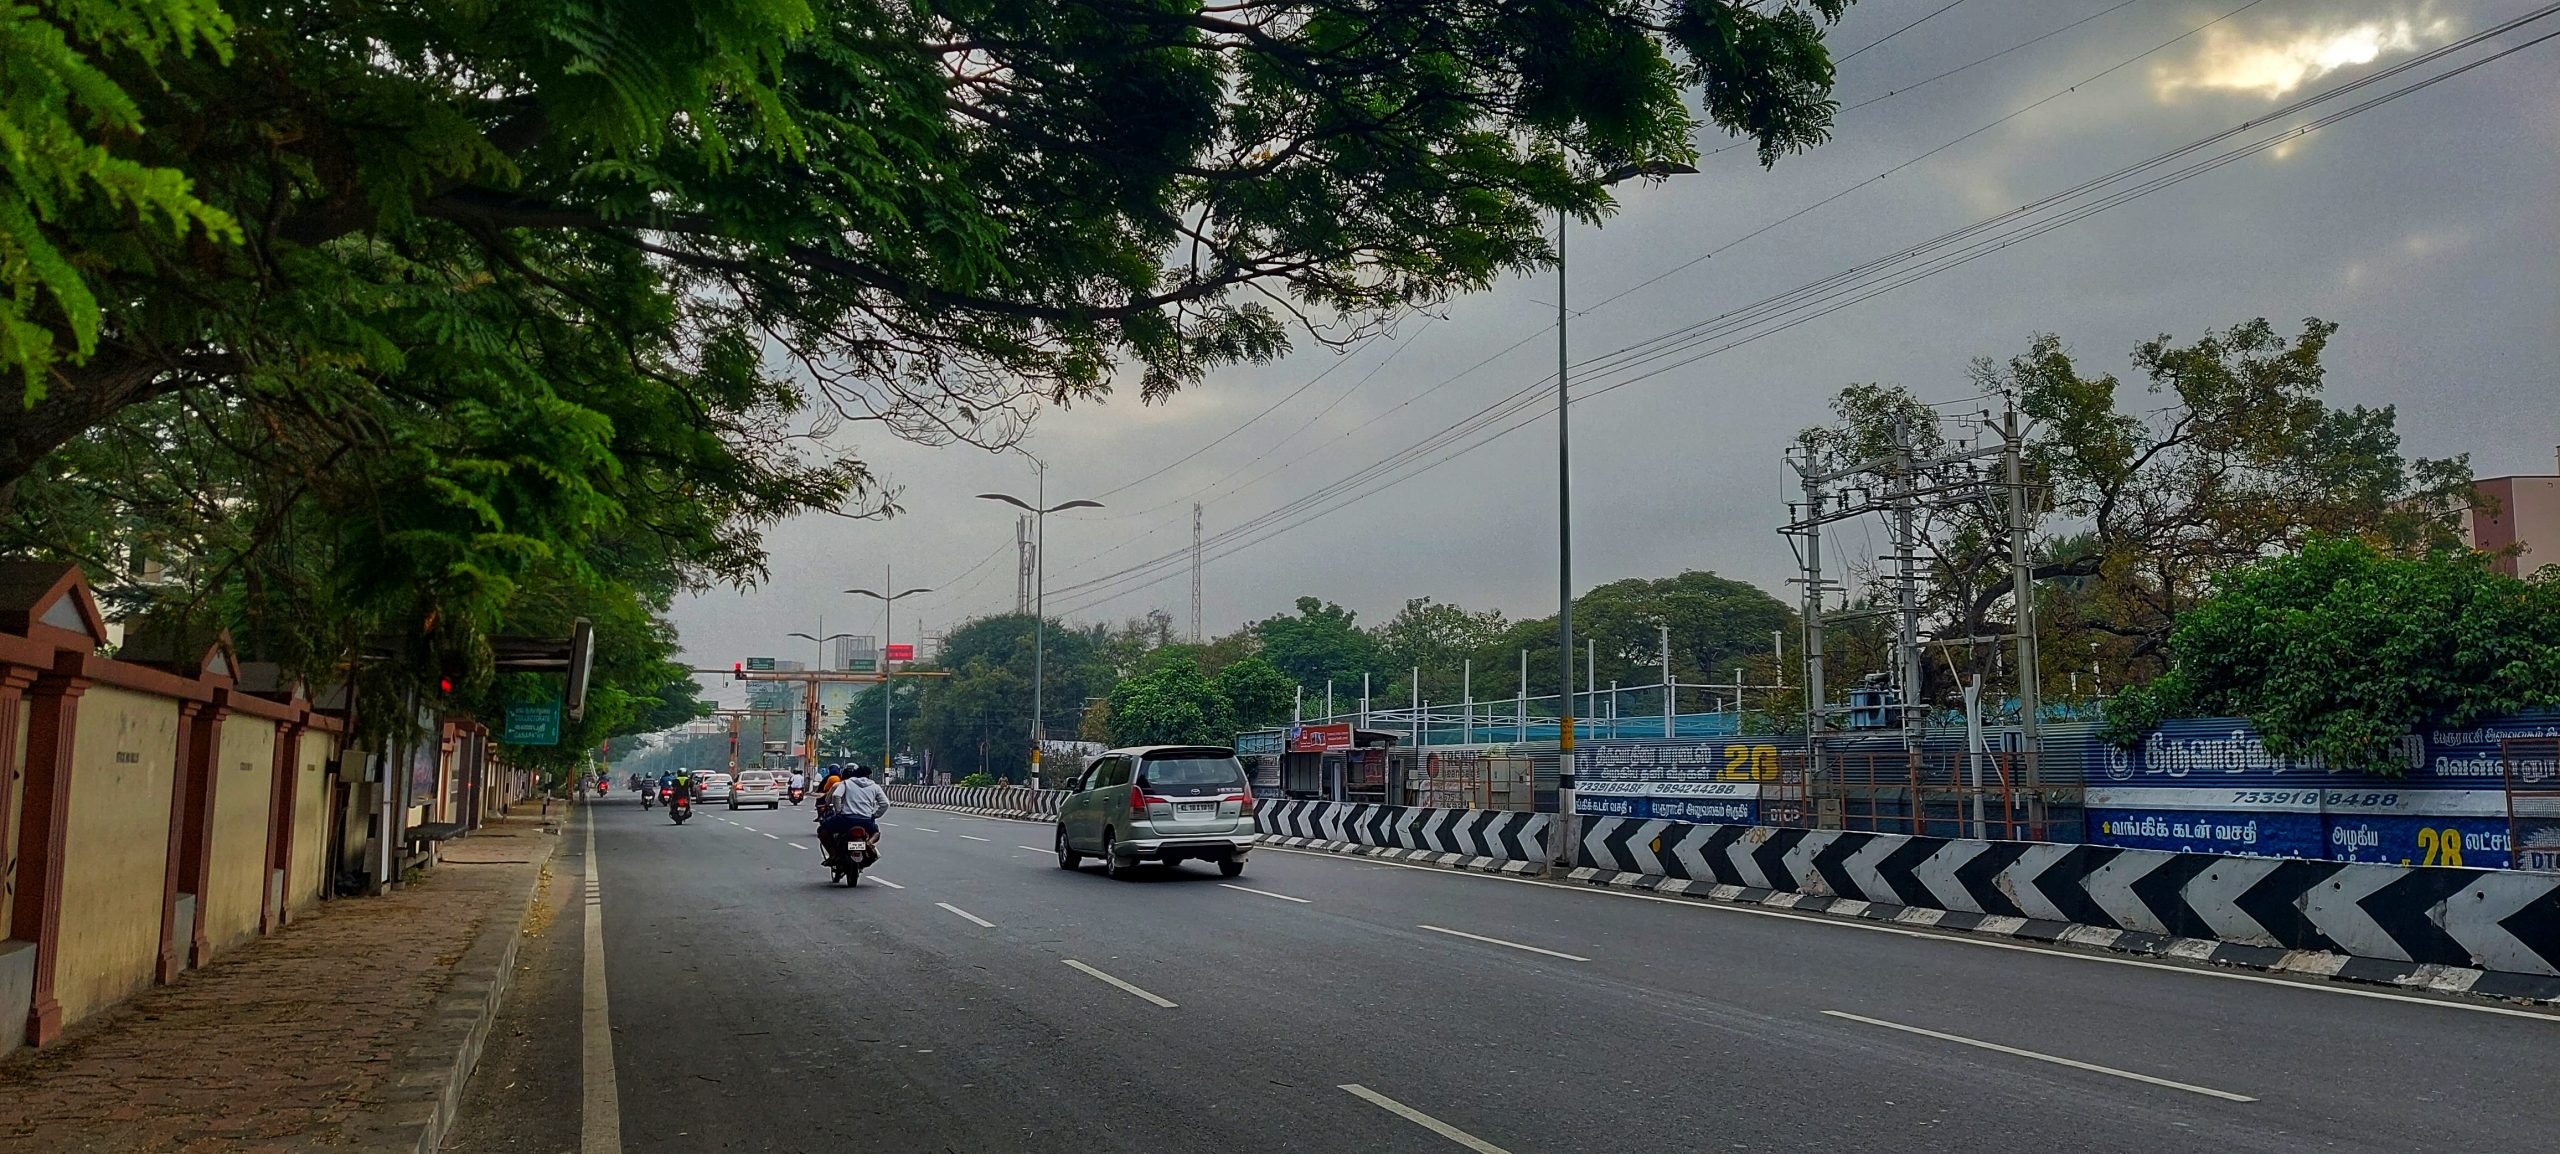 Traffic on a road in early morning